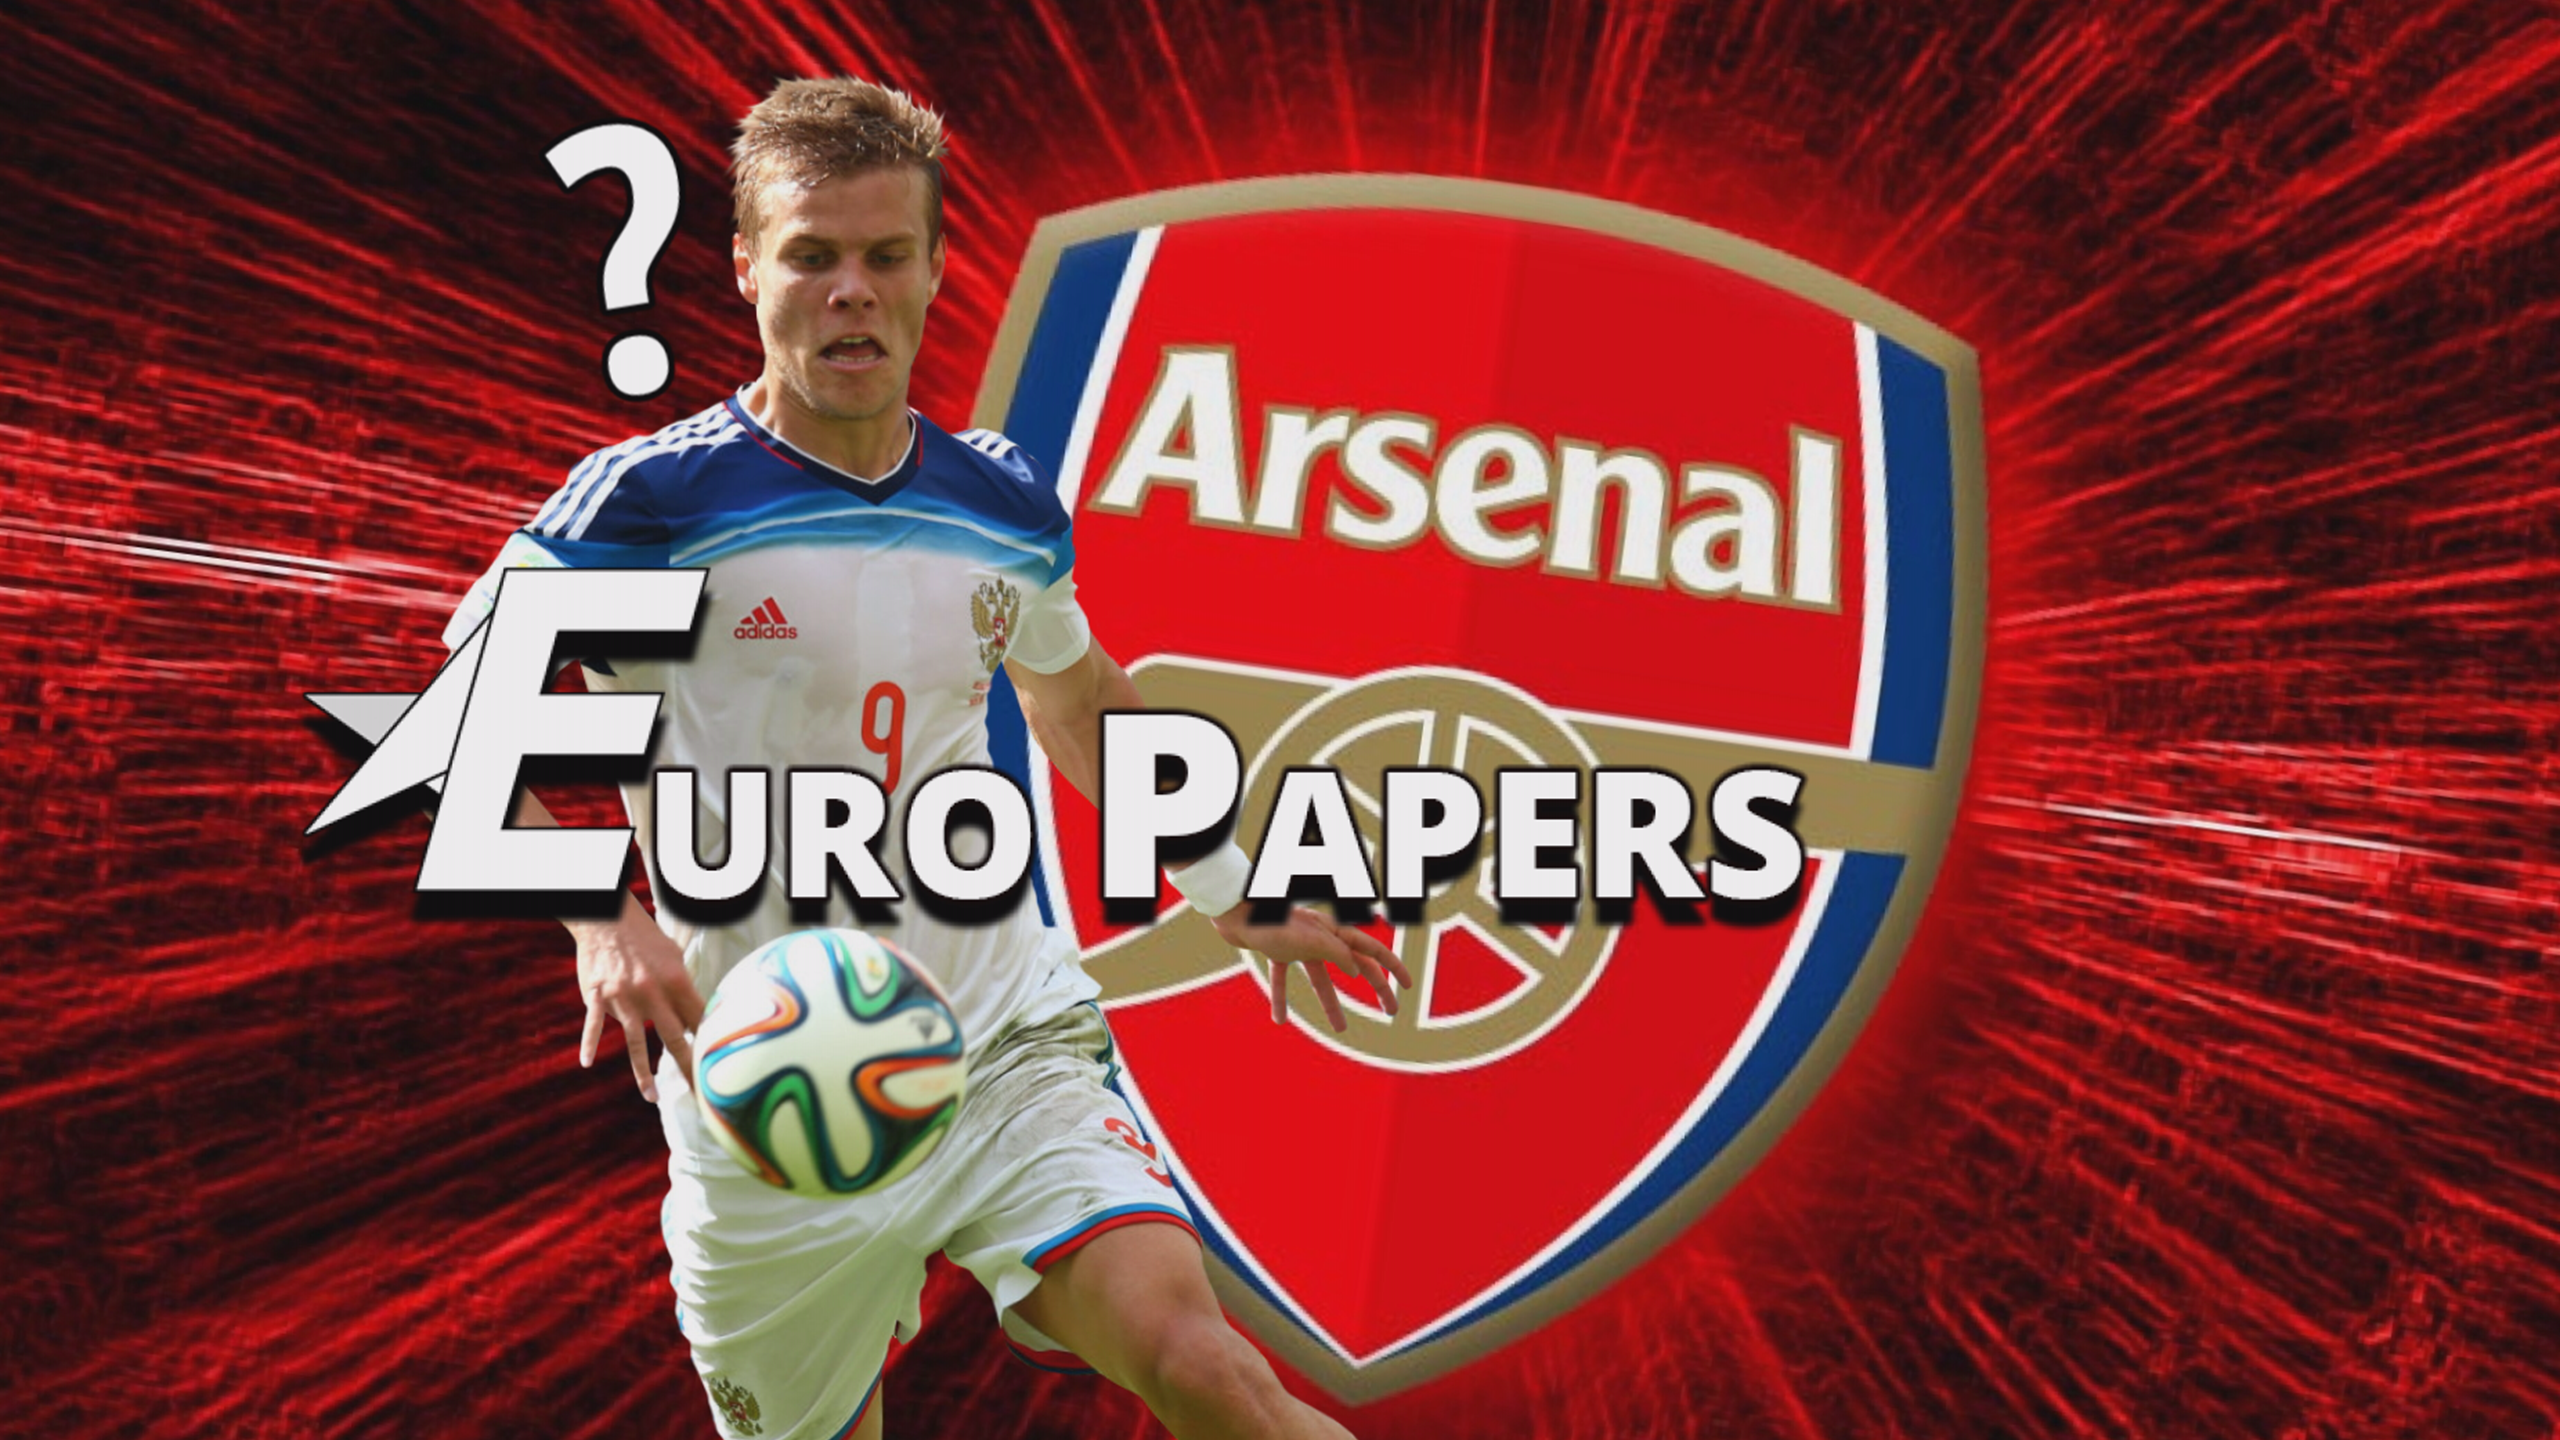 Benzema snub leads to Arsenal's bizarre link with Kokorin - Euro Papers